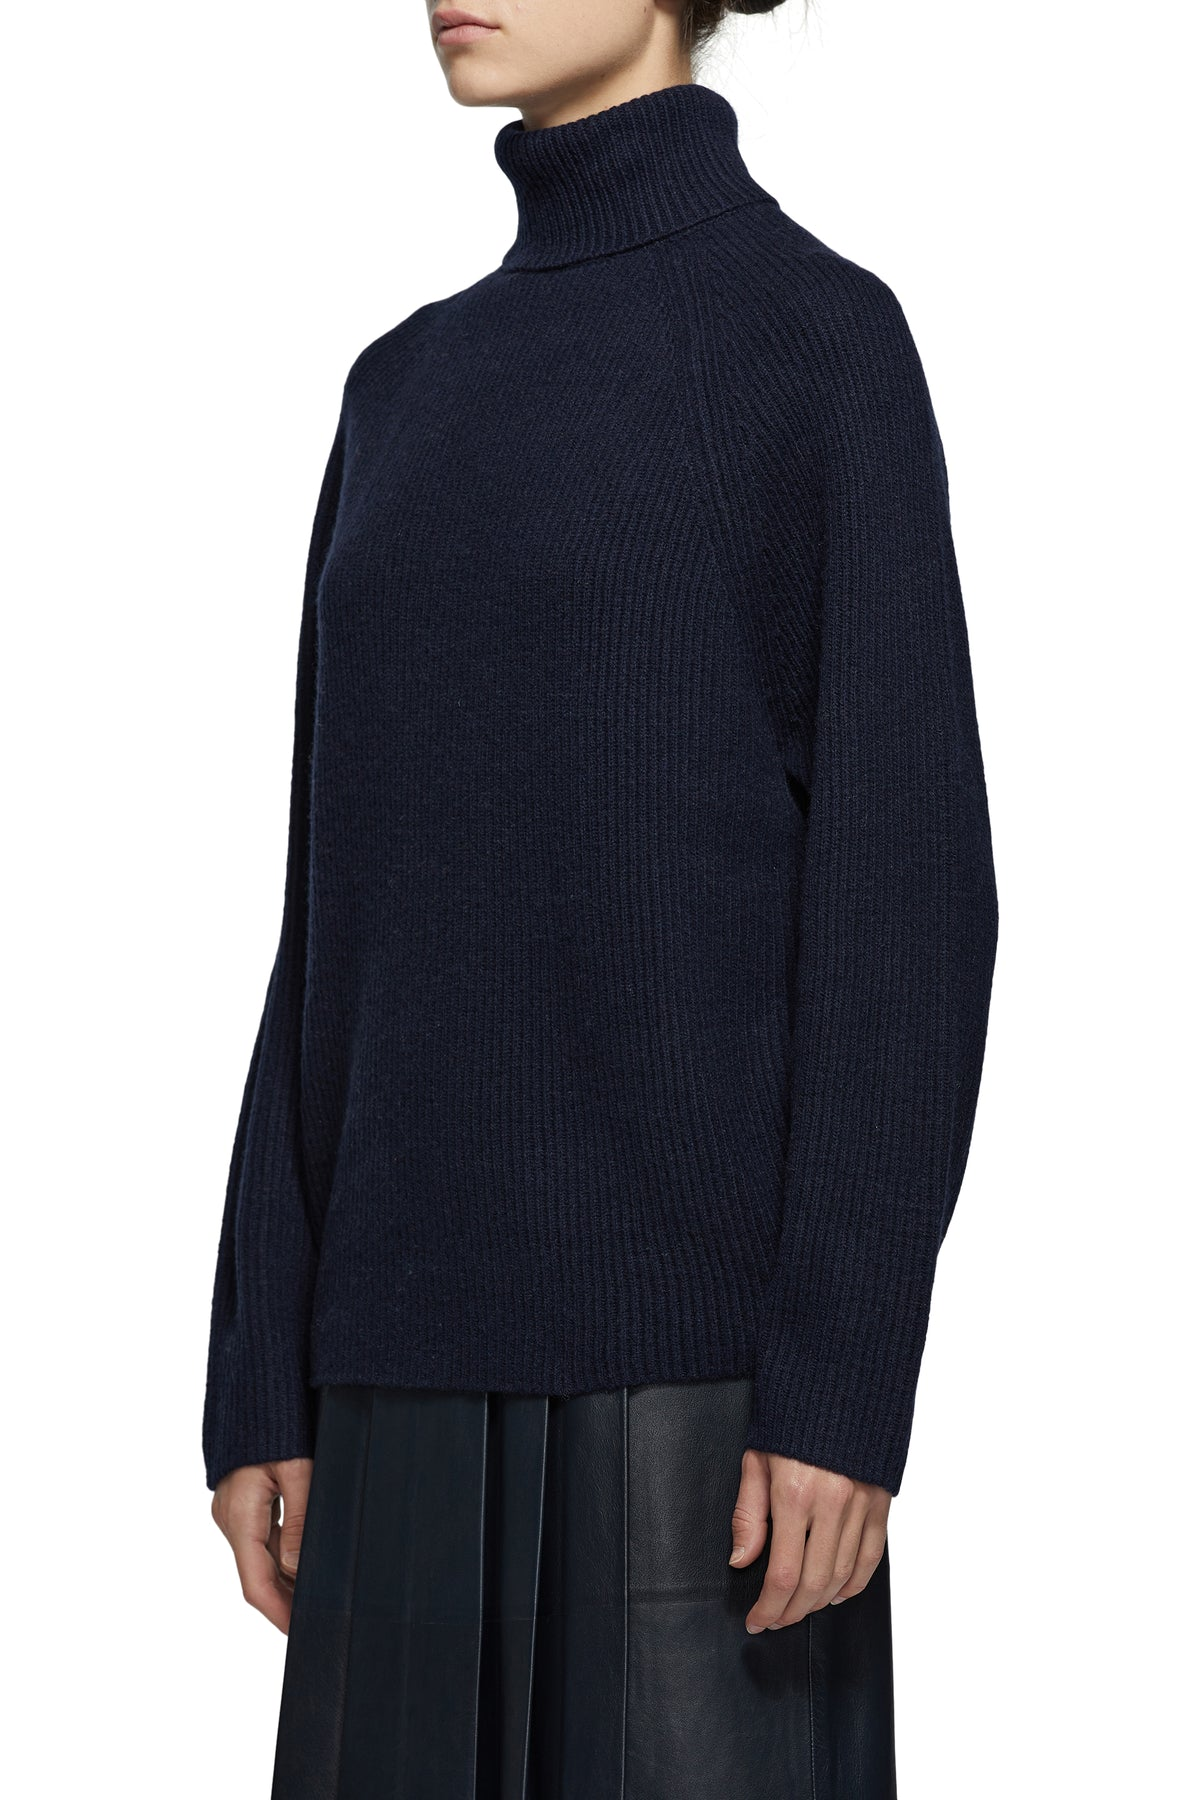 Wigman Turtleneck